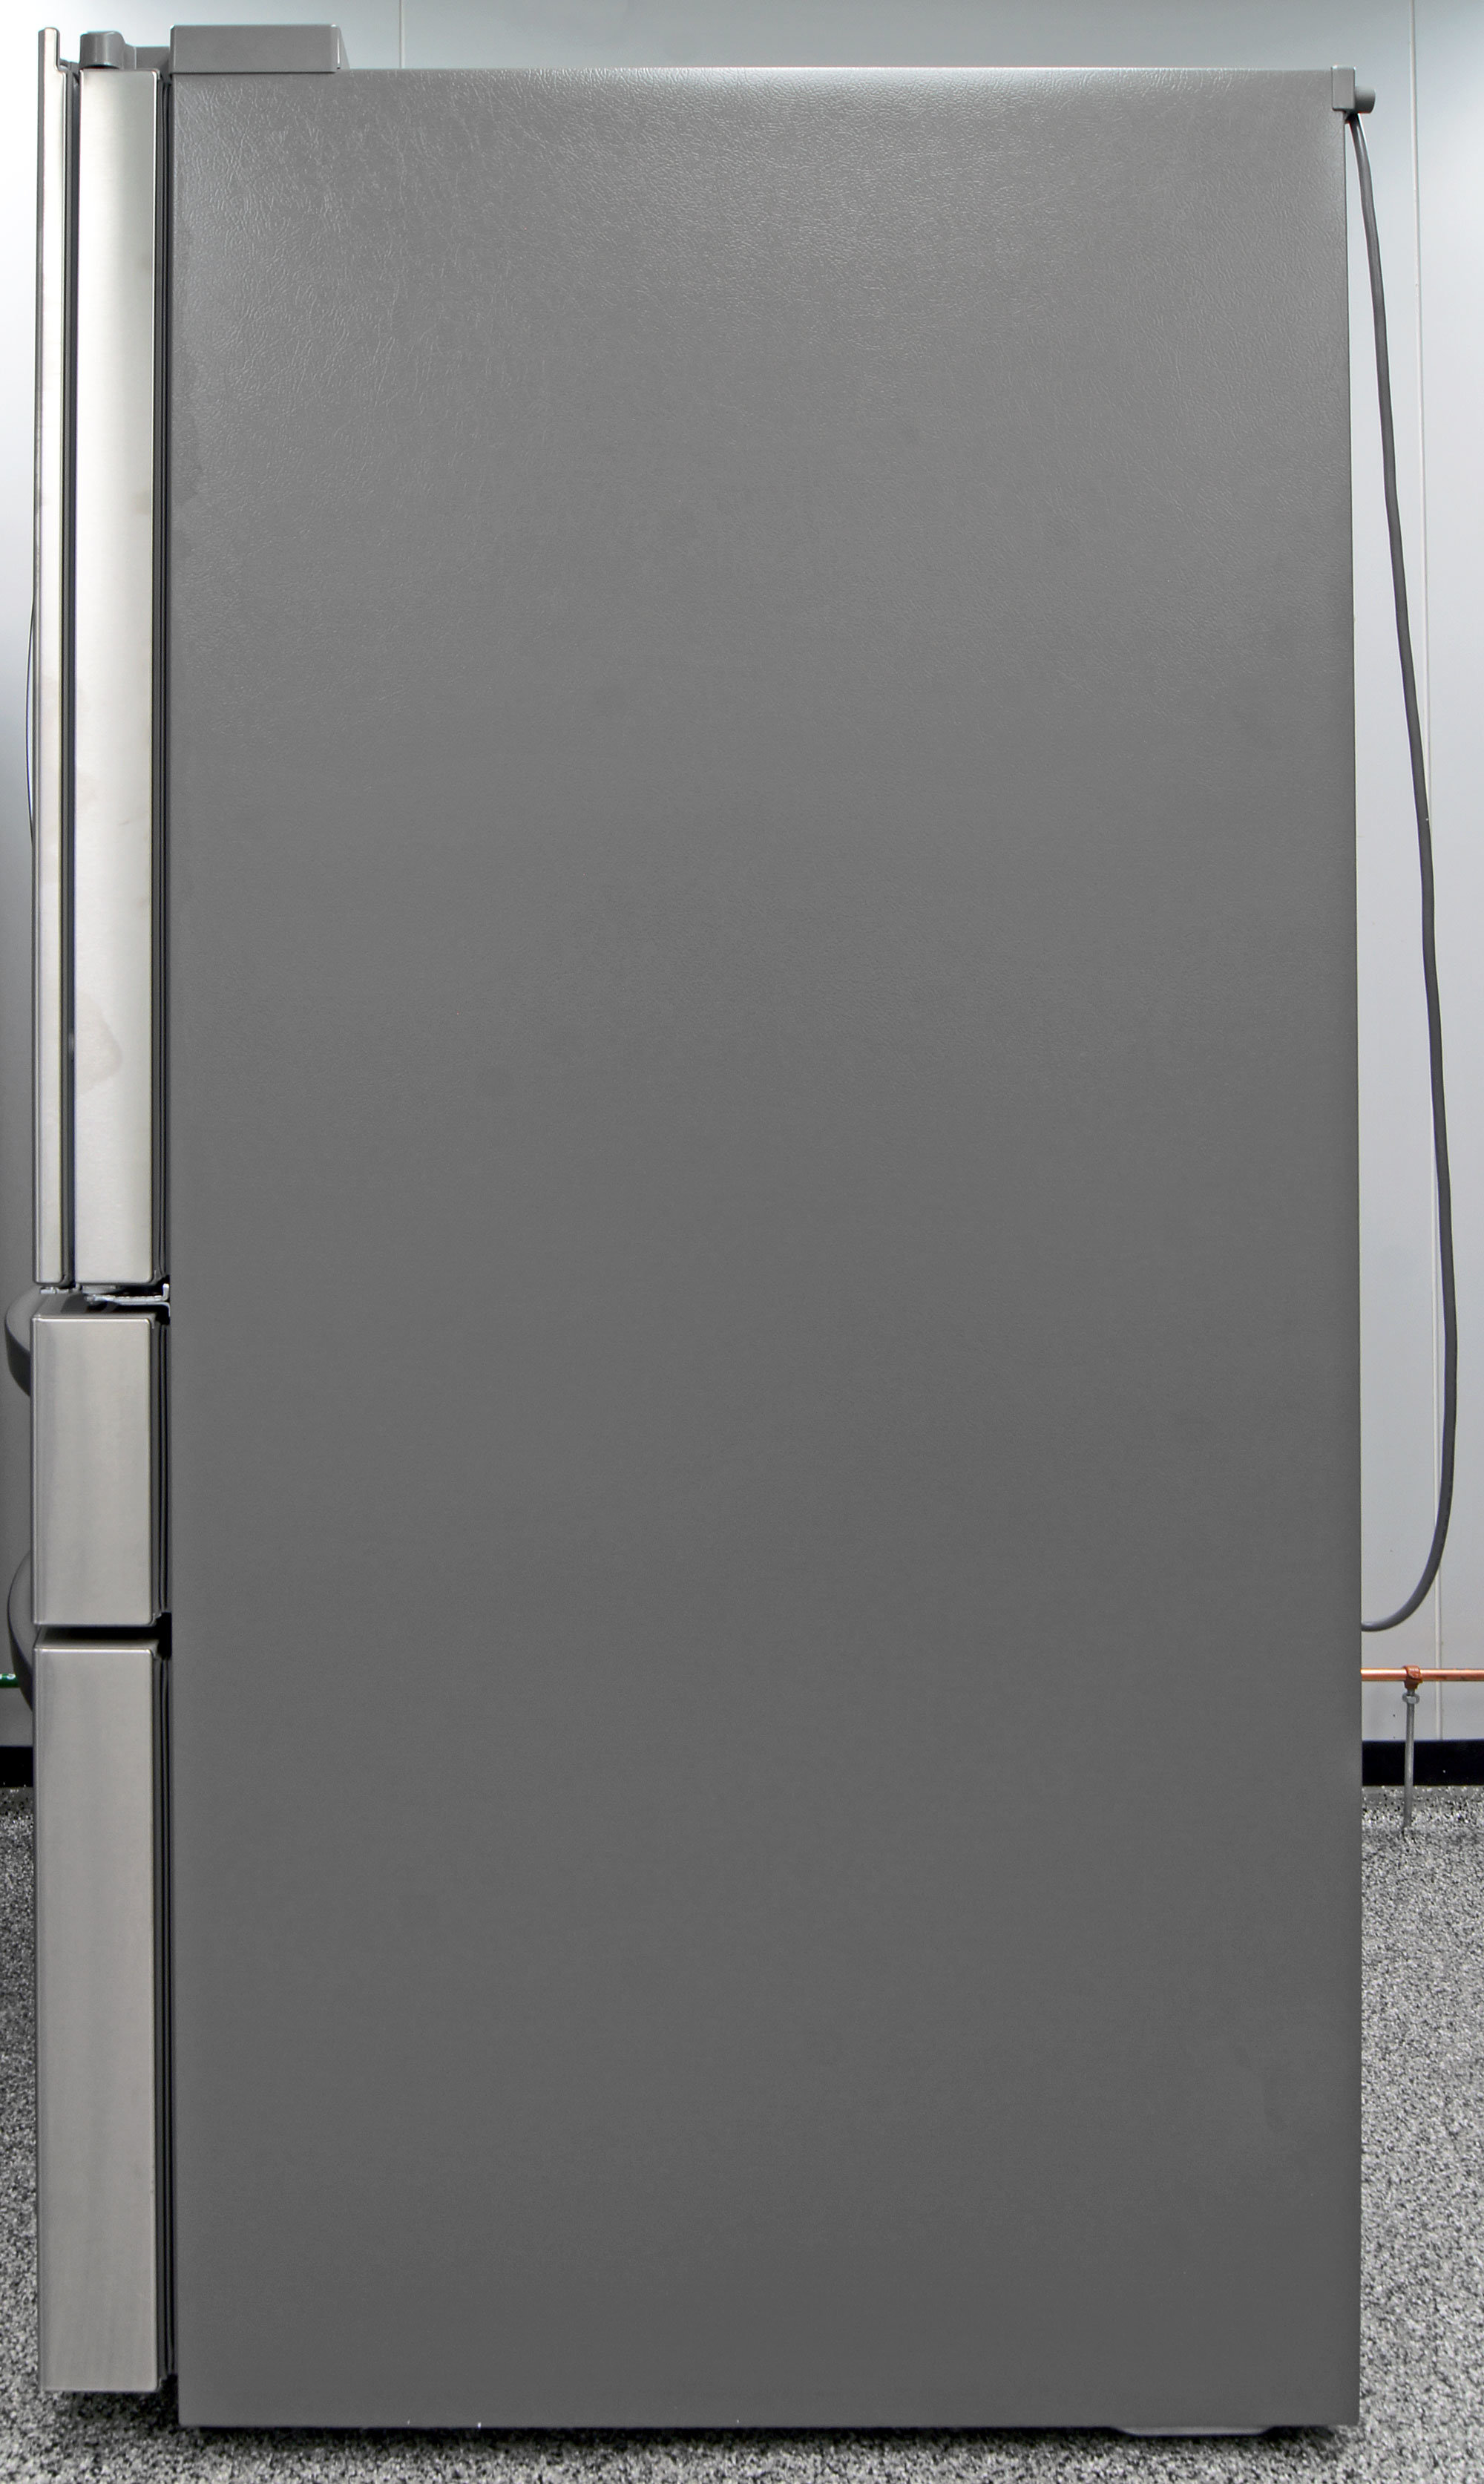 Gray matte sides complement the stainless exterior of the LG LMXS30776S.